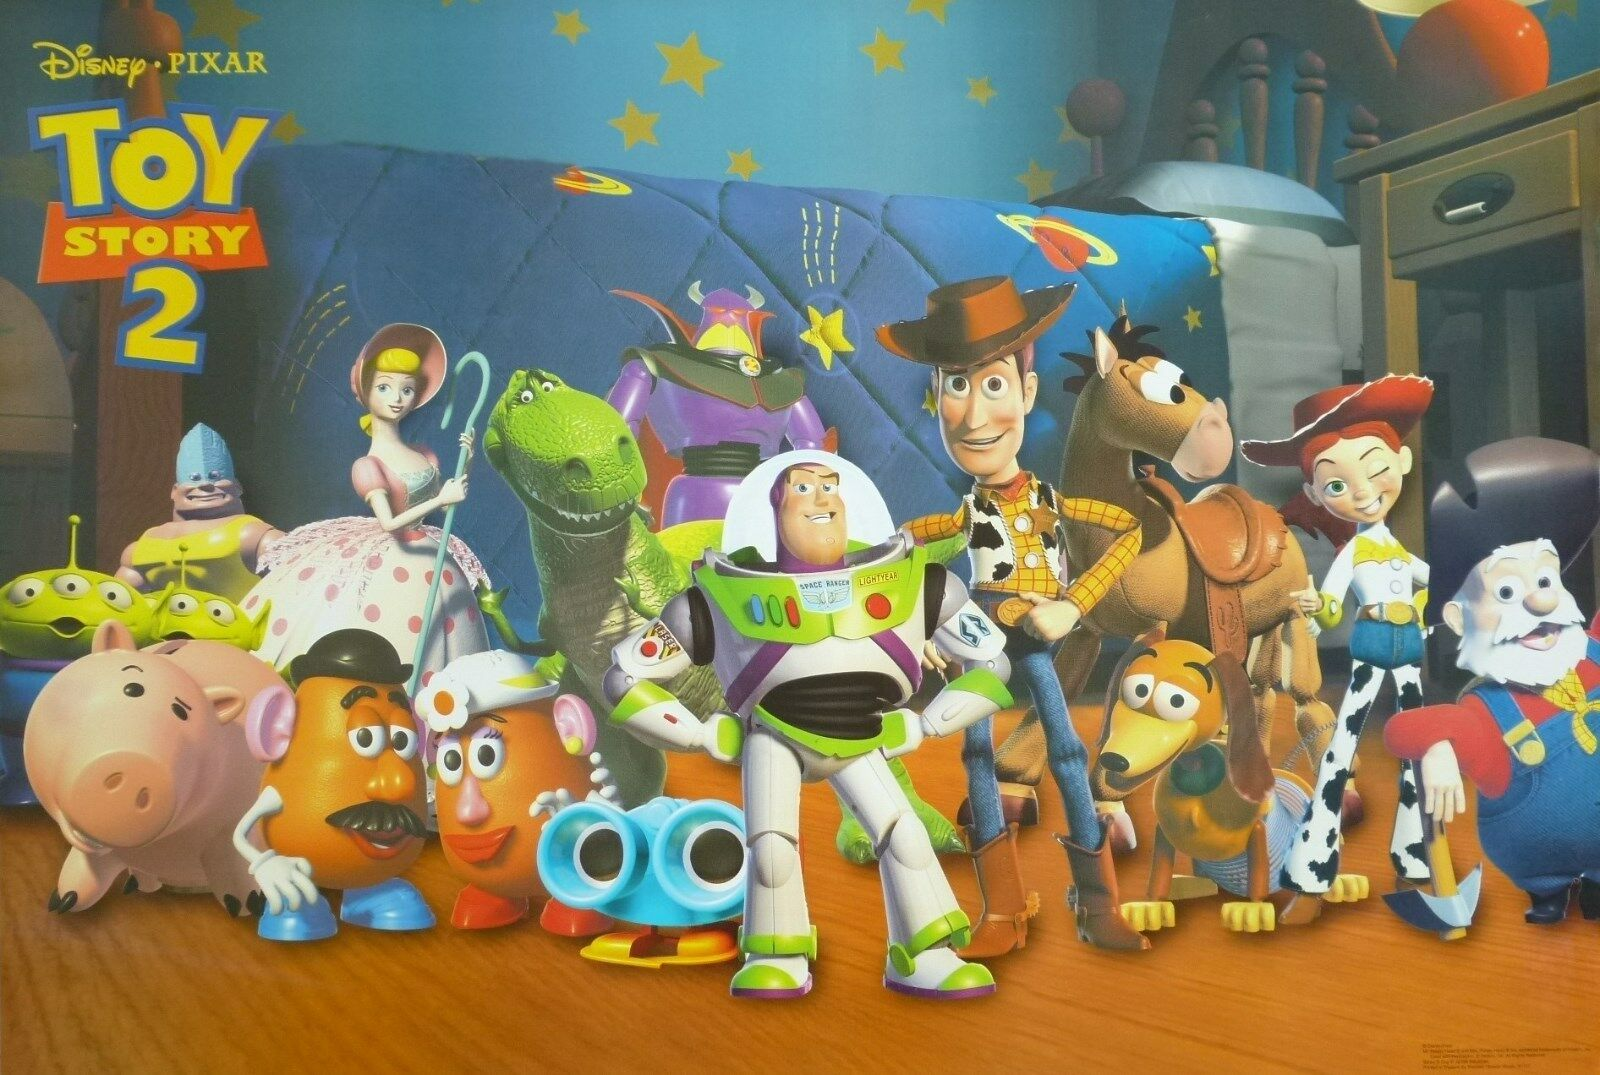 DISNEY/PIXAR U0026quot;TOY STORY 2u0026quot; POSTER -Woody U0026 Buzz Standing With All The Characters | EBay